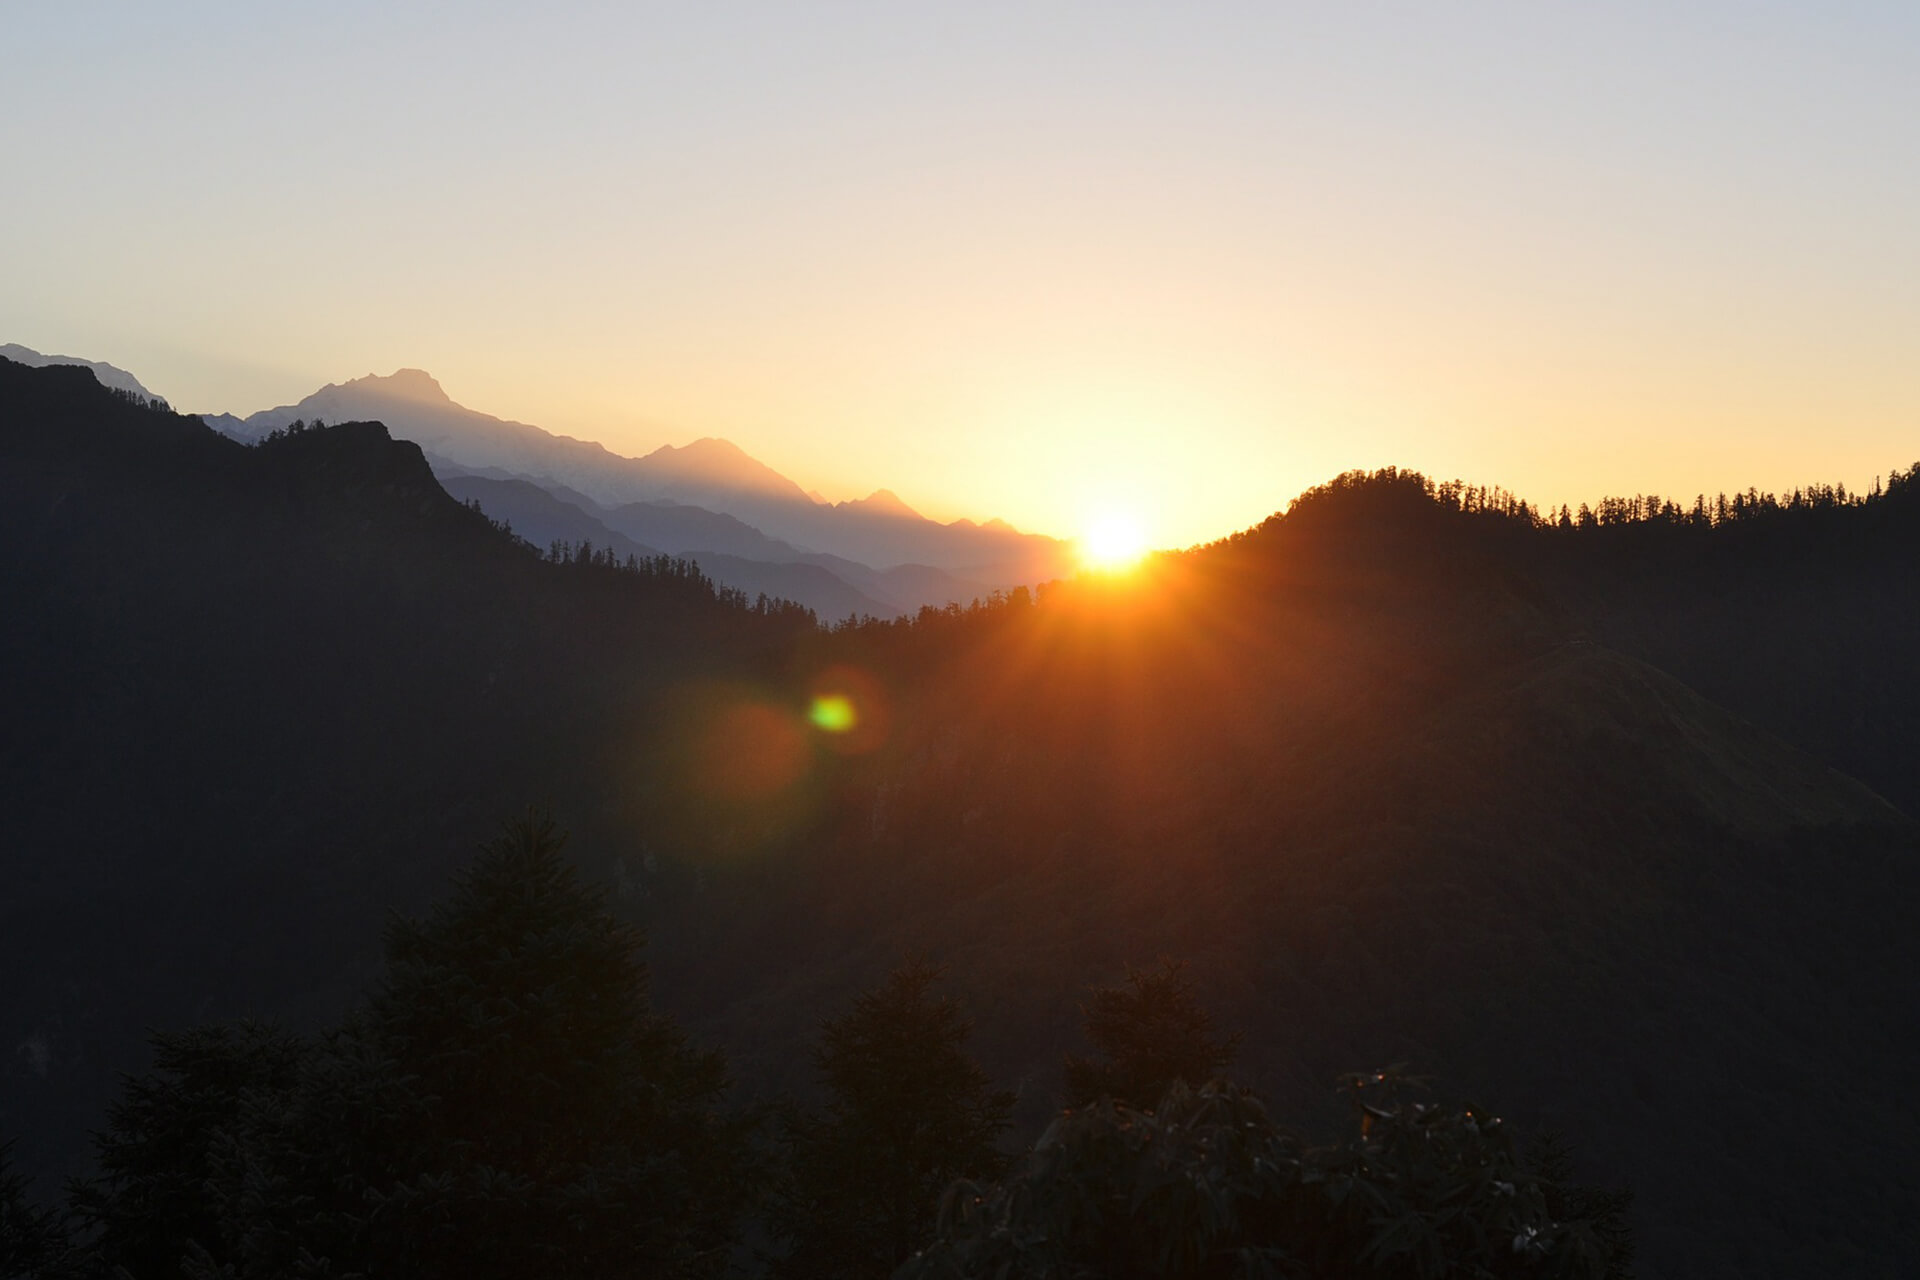 sunrise-in-mountains-nepal